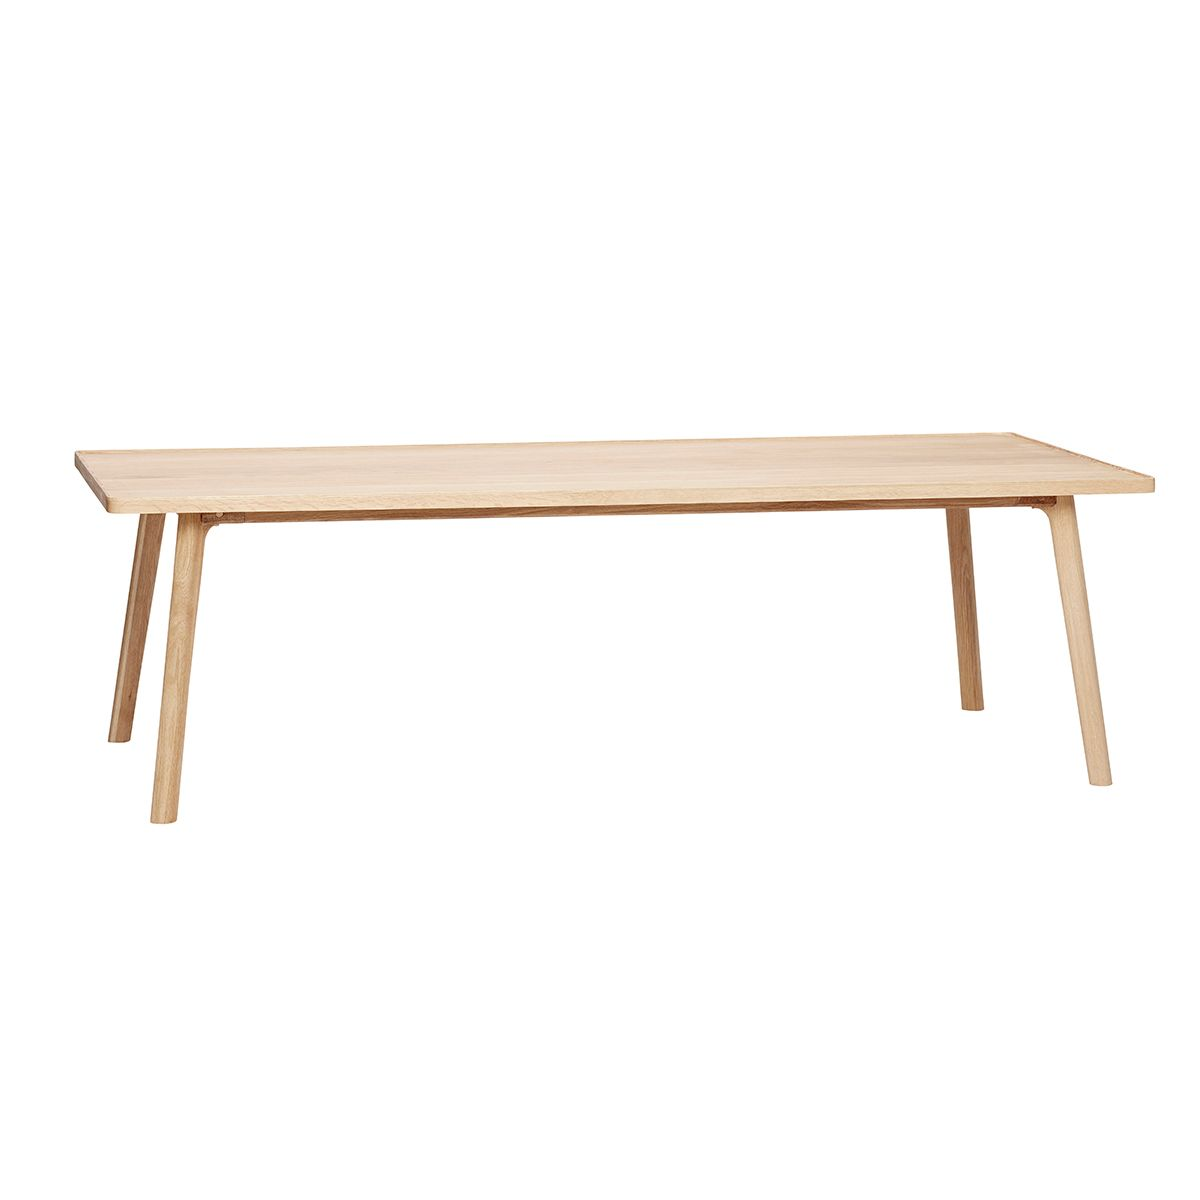 Table basse rectangulaire en chêne massif naturel L 160 cm Hübsch